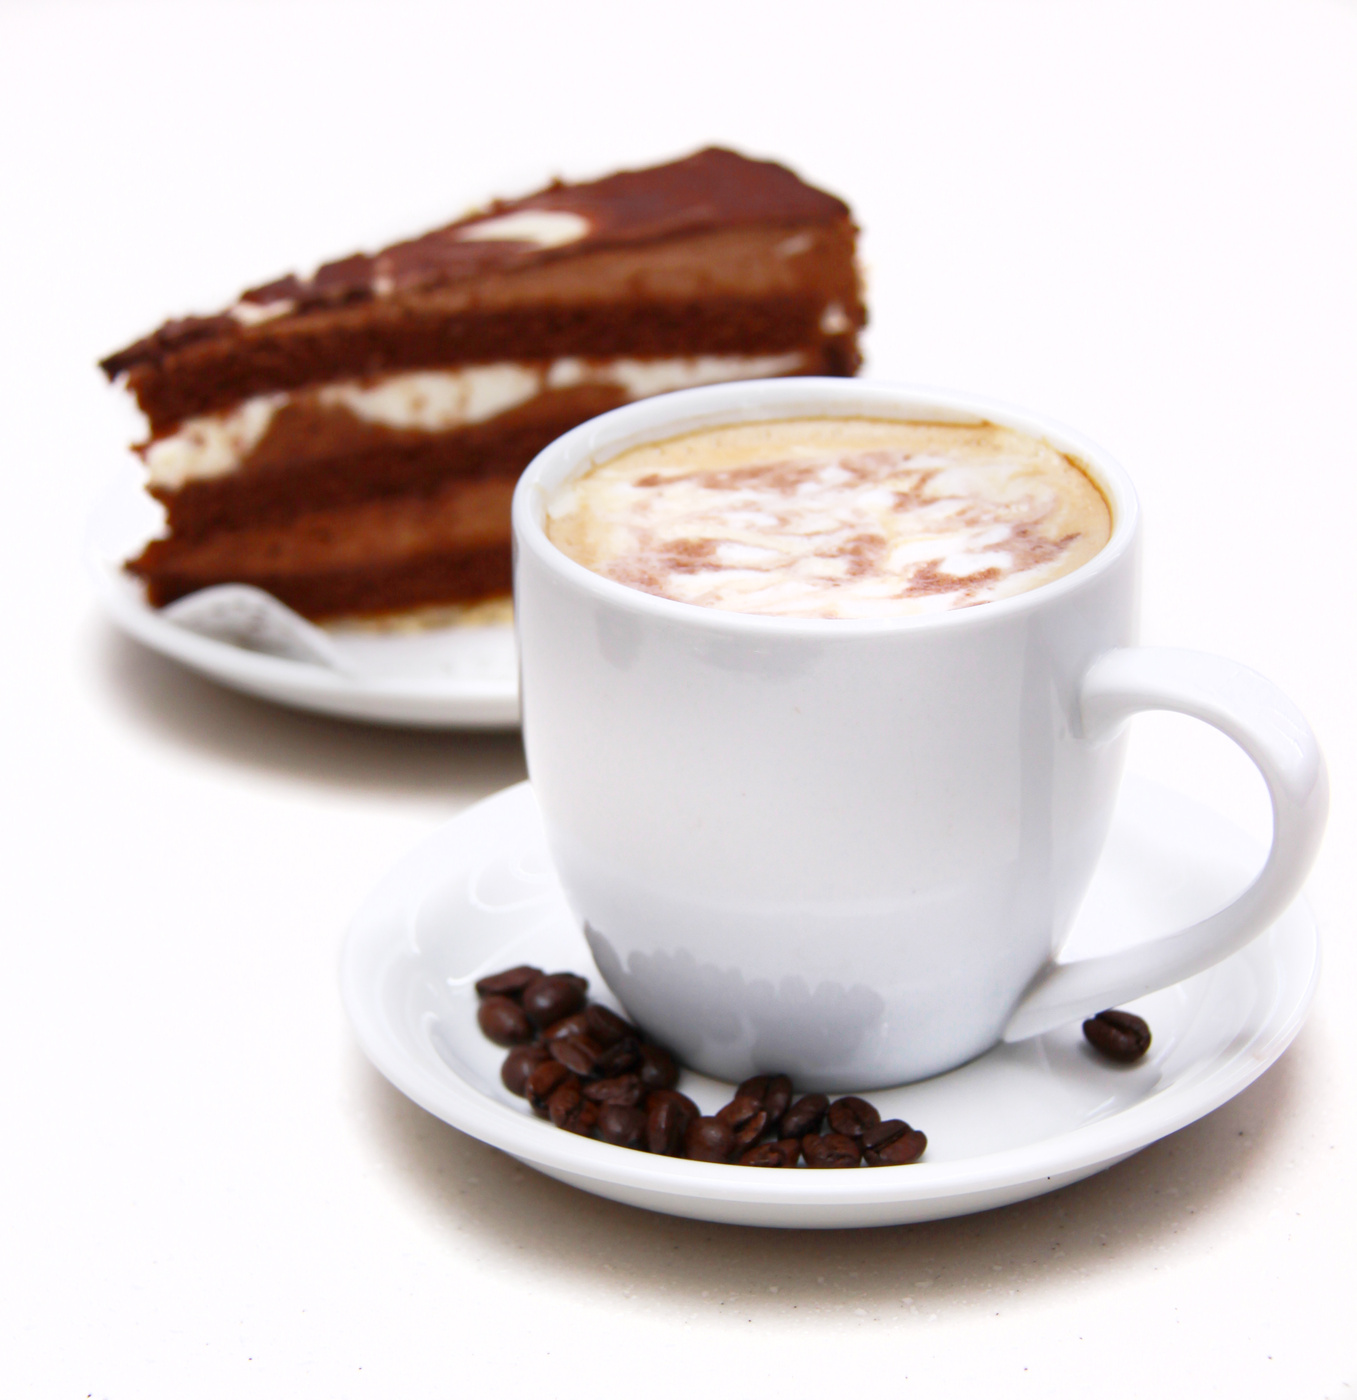 clipart coffee and cake - photo #41